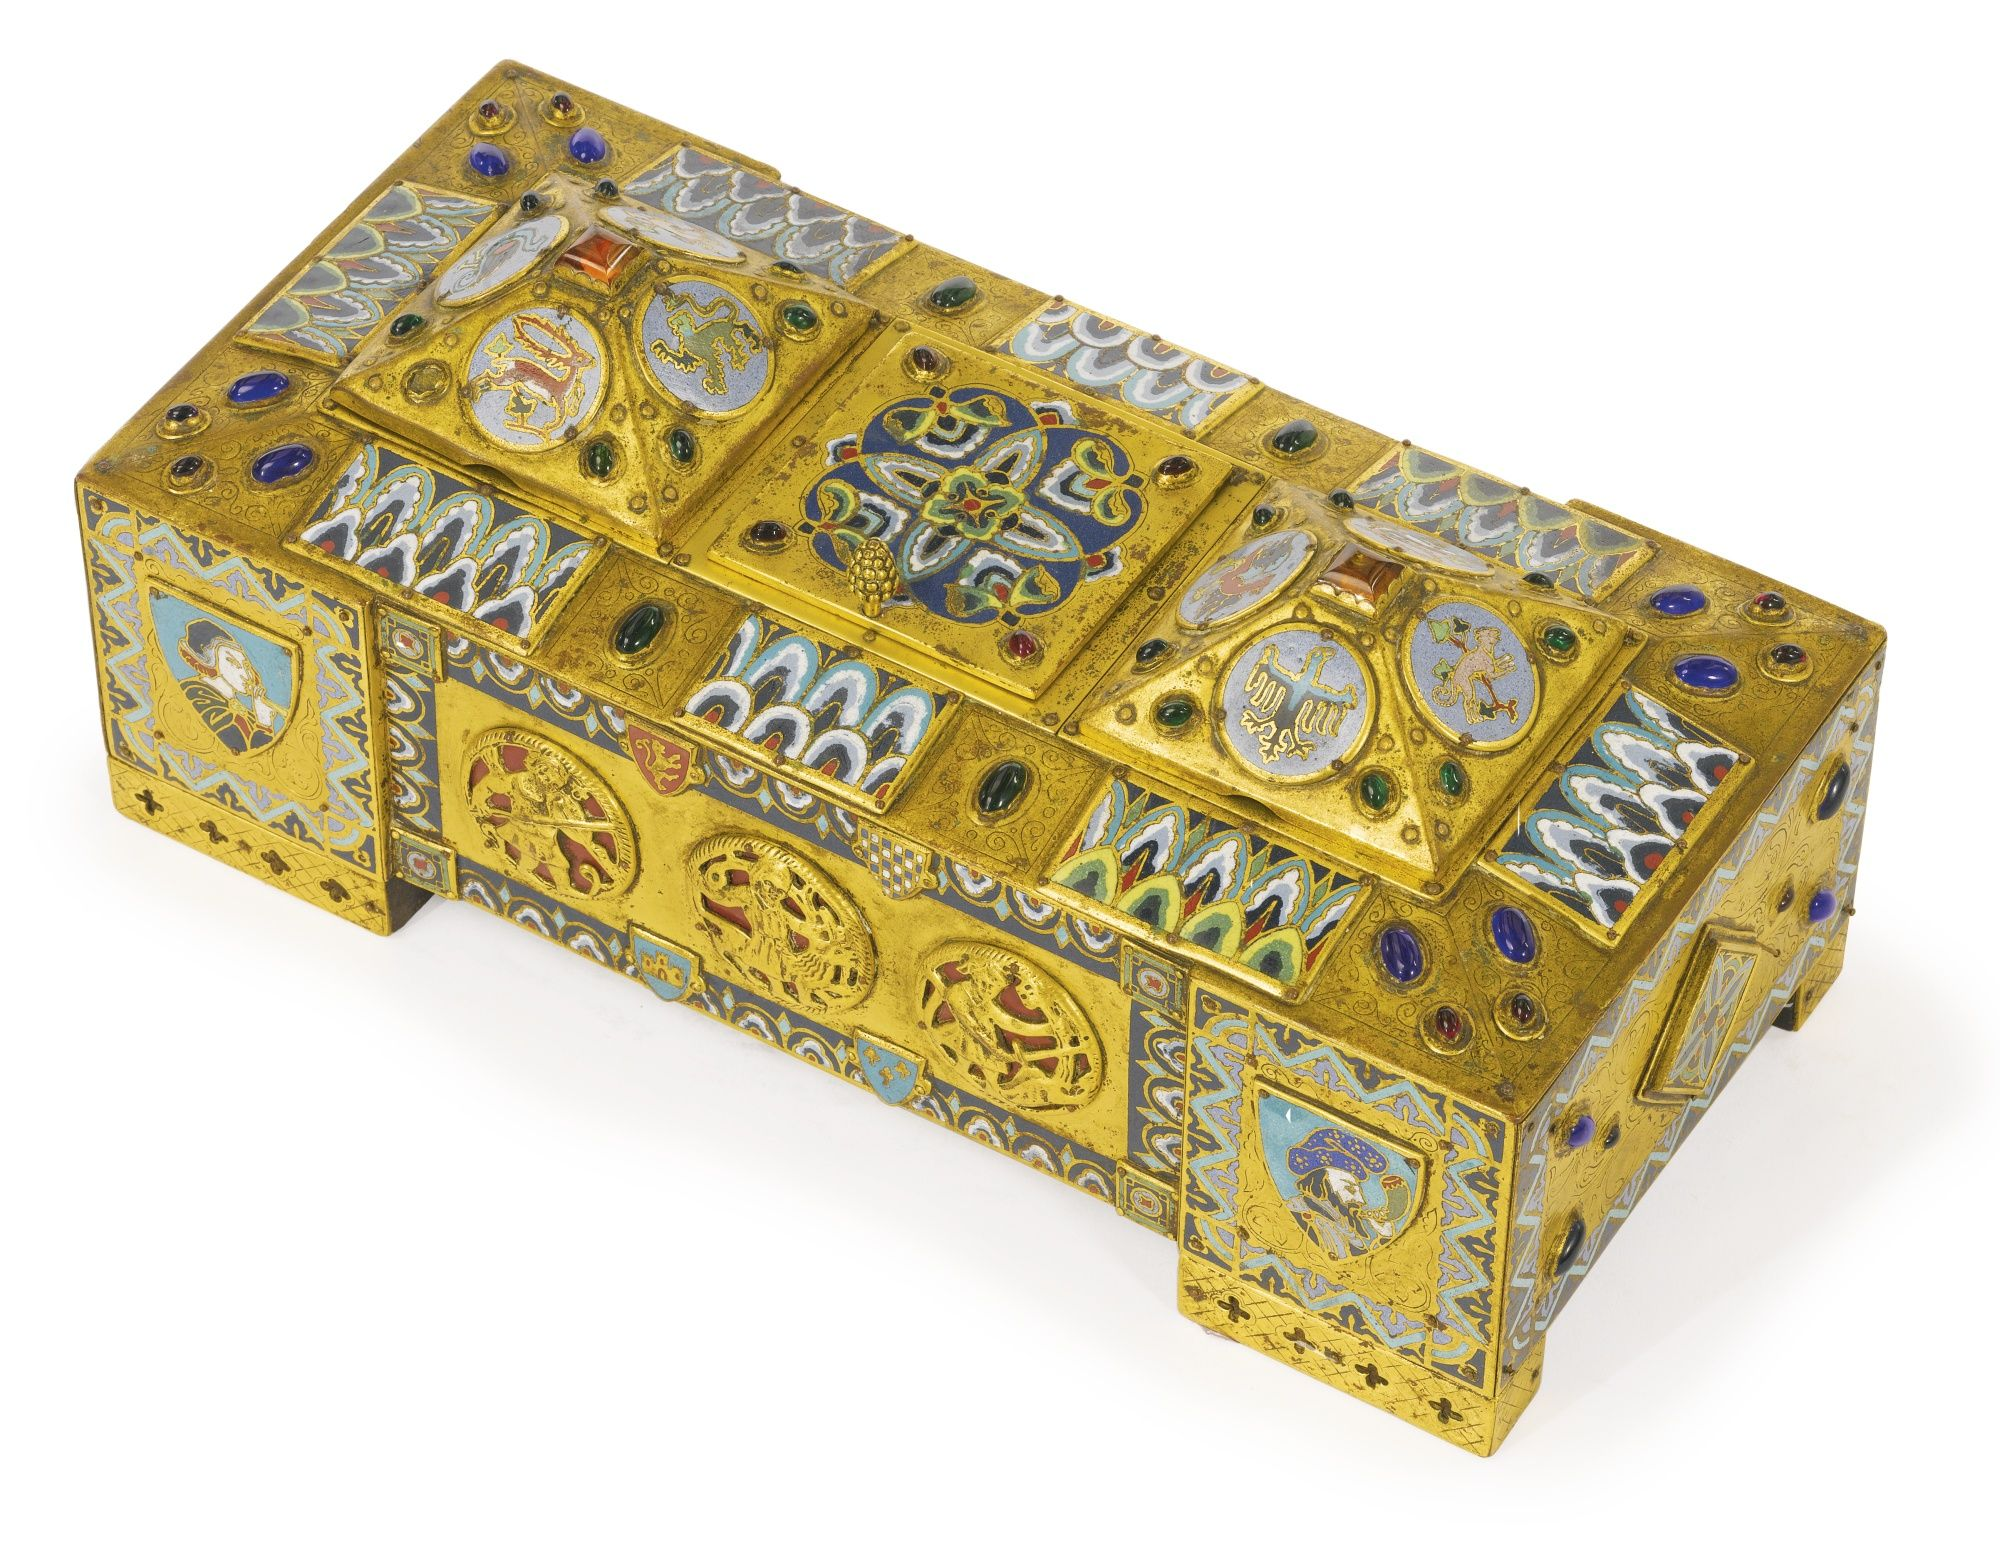 Edward F. Caldwell & Co 1851-1914 A gilt bronze, gilt metal, colored glass, champlevé and cloisonné enamel inkwell New York, early 20th century the lid of the mid section compartment engraved E. F. Caldwell & Co. Inc. New York height 5 in.; width 11 1/2 in.; depth 5 1/2 in. 13 cm; 29 1/2 in.; 14 cm